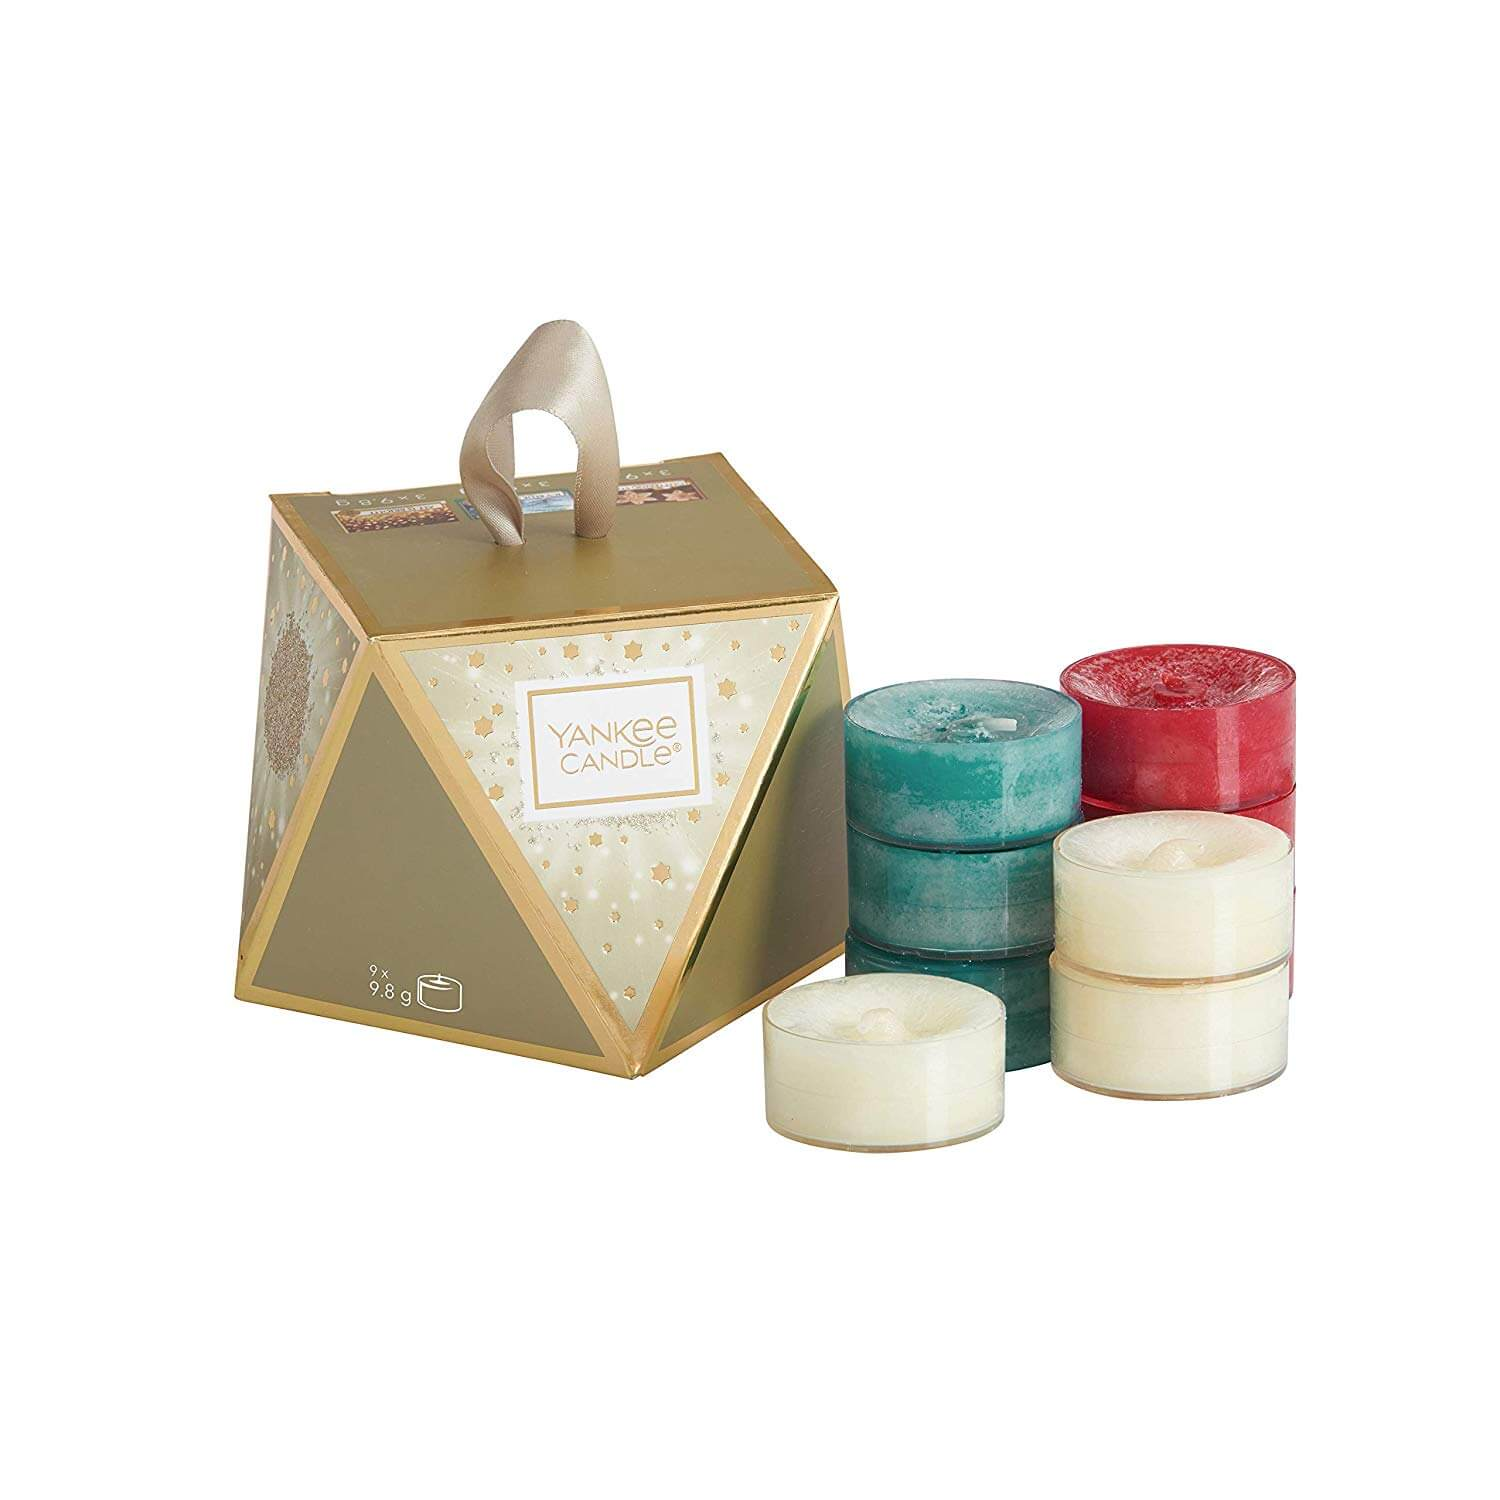 Yankee Candle Stocking Filler with 9 Scented Tea Lights